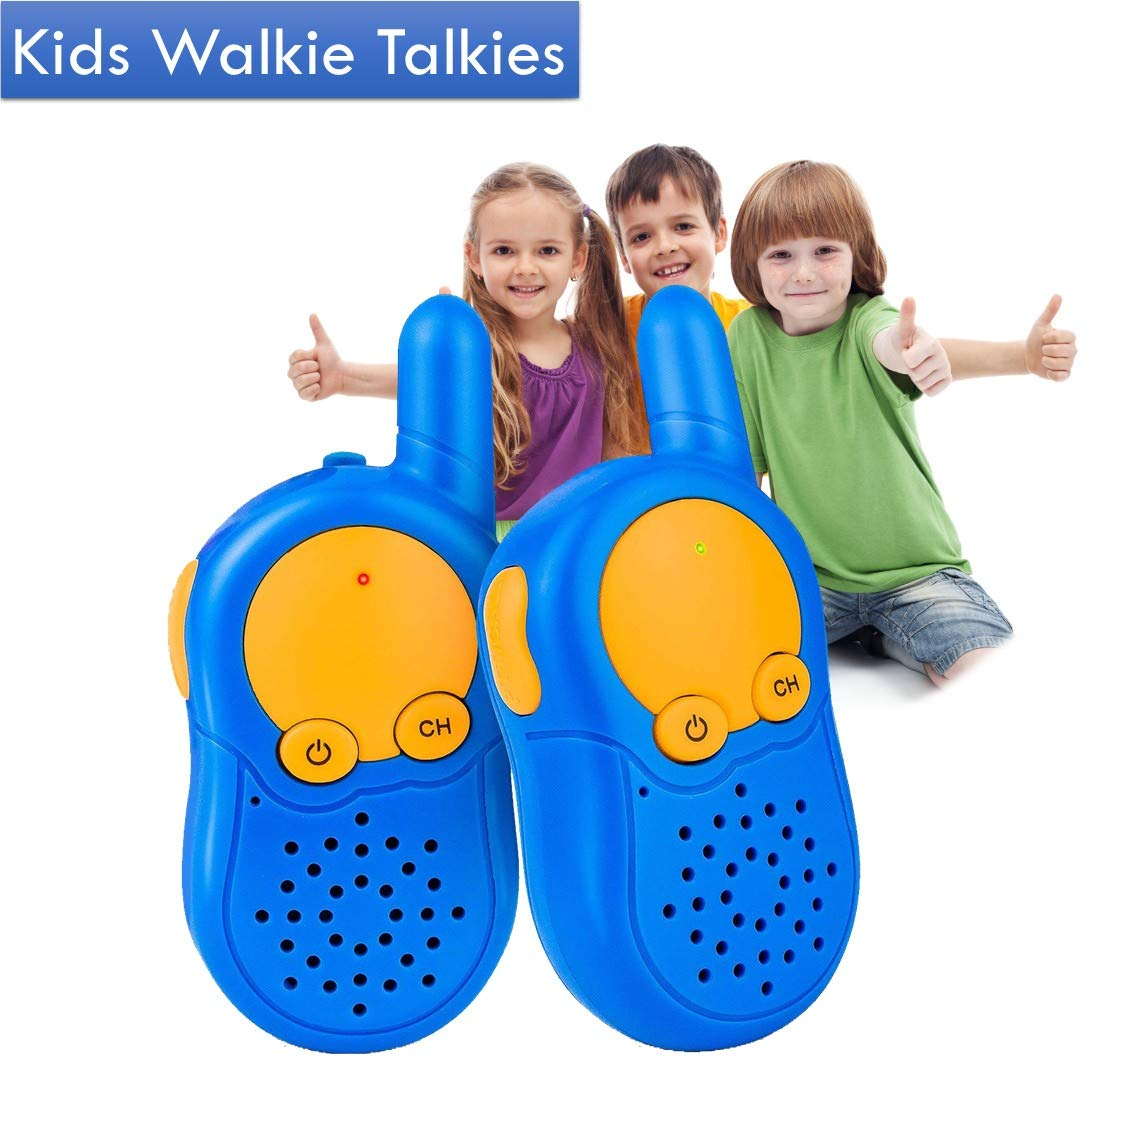 5 Year Old Gift Boy Walkie Talkies, Kids Walkie Talkie for Toddler, Long Range Simple Easy Radio Communication Kid Fun Toys Gifts, Children Toys for 4 5 6 7 8 Year Old Boy Birthday Present KOMVOX